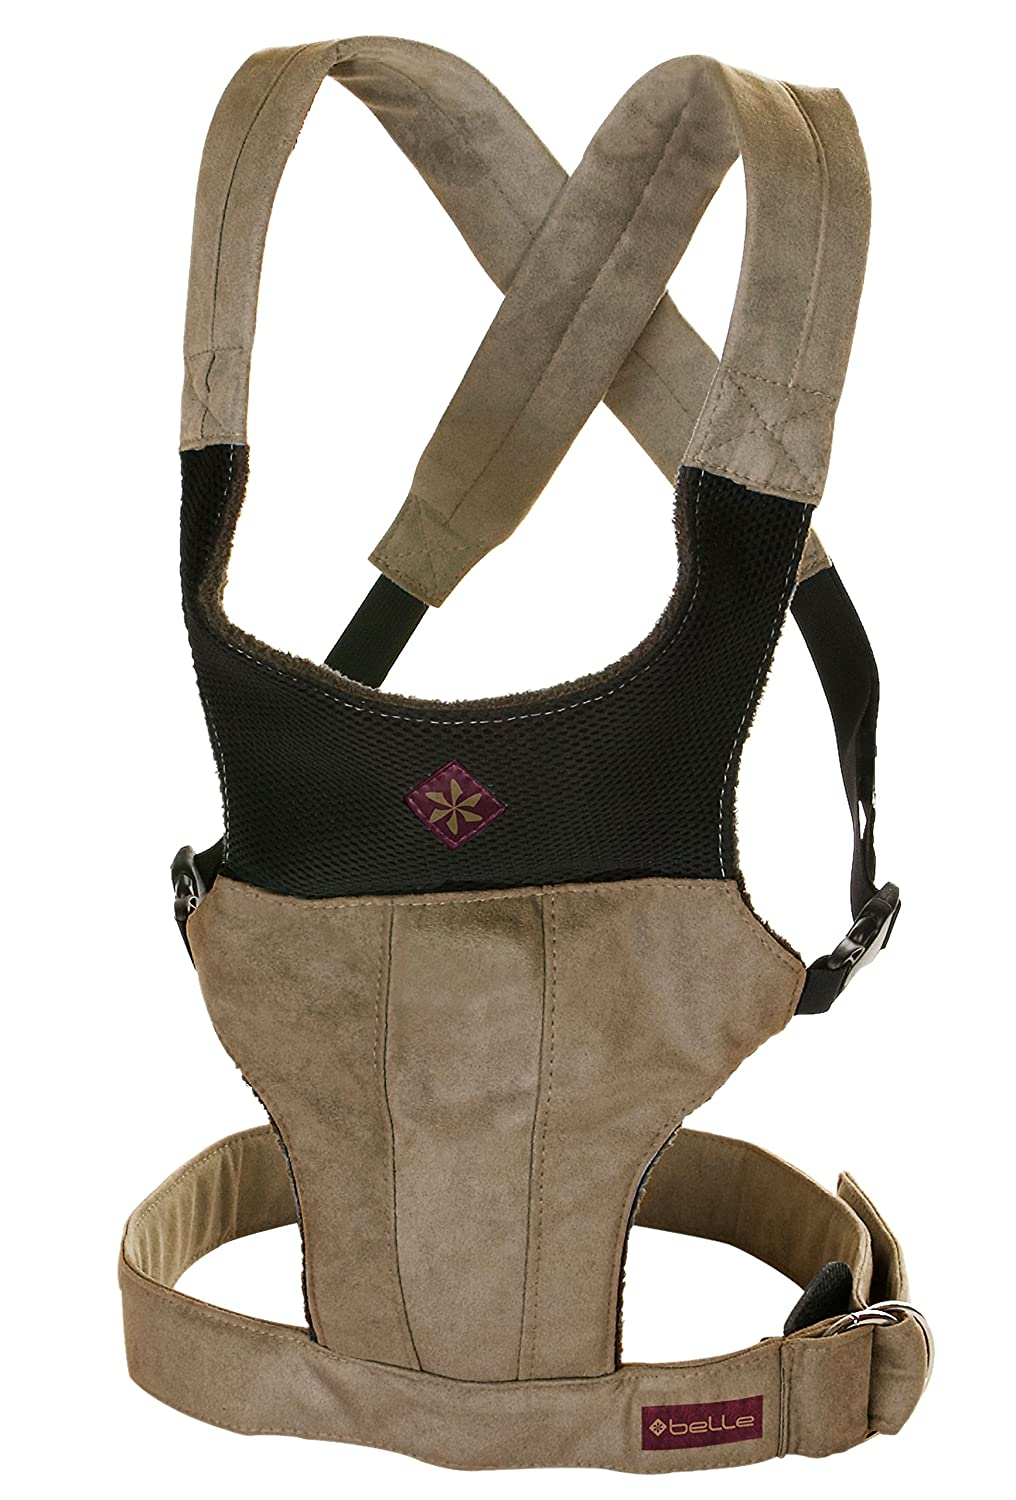 Structured Fit Baby Carrier by Belle – Khaki Microsuede